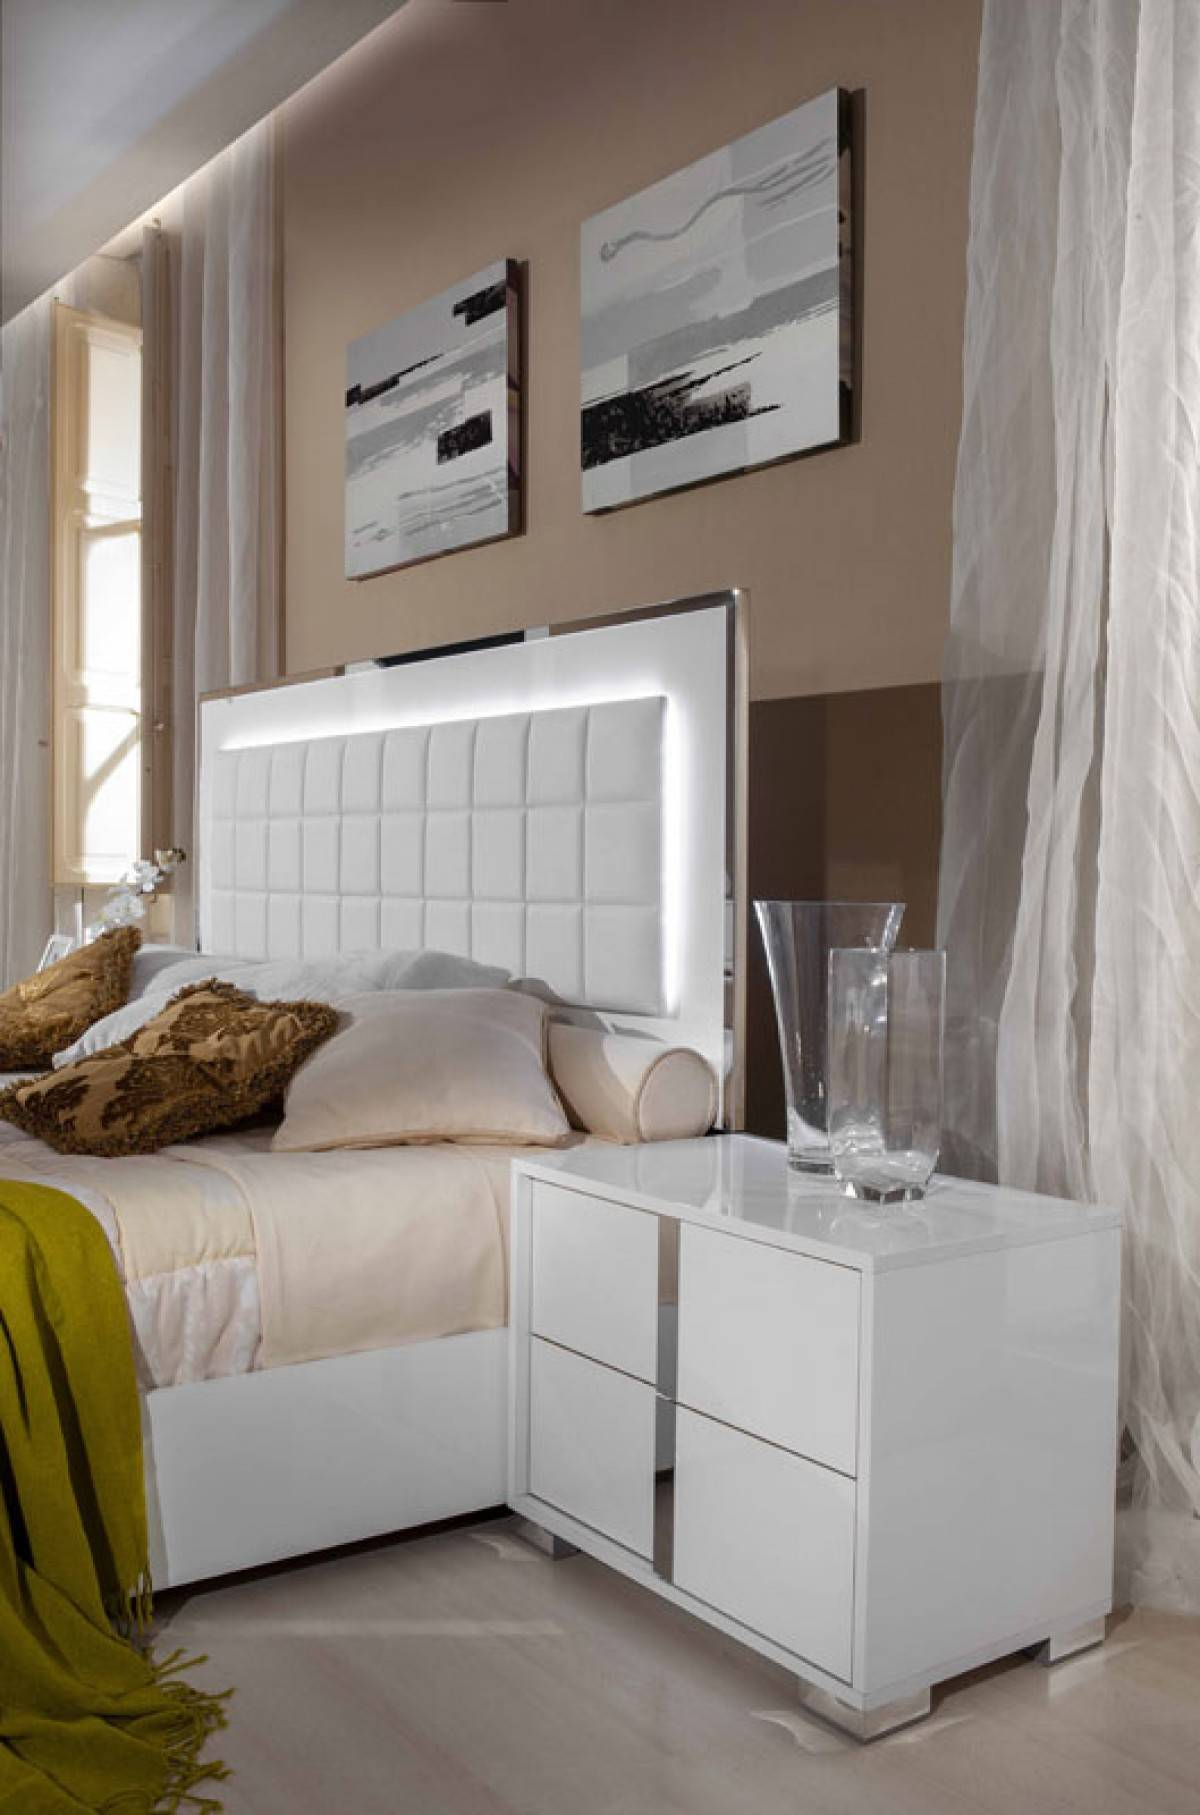 Modrest San Marino Modern White Bedroom Set: Made In Italy Wood High End Bedroom Furniture Feat Light